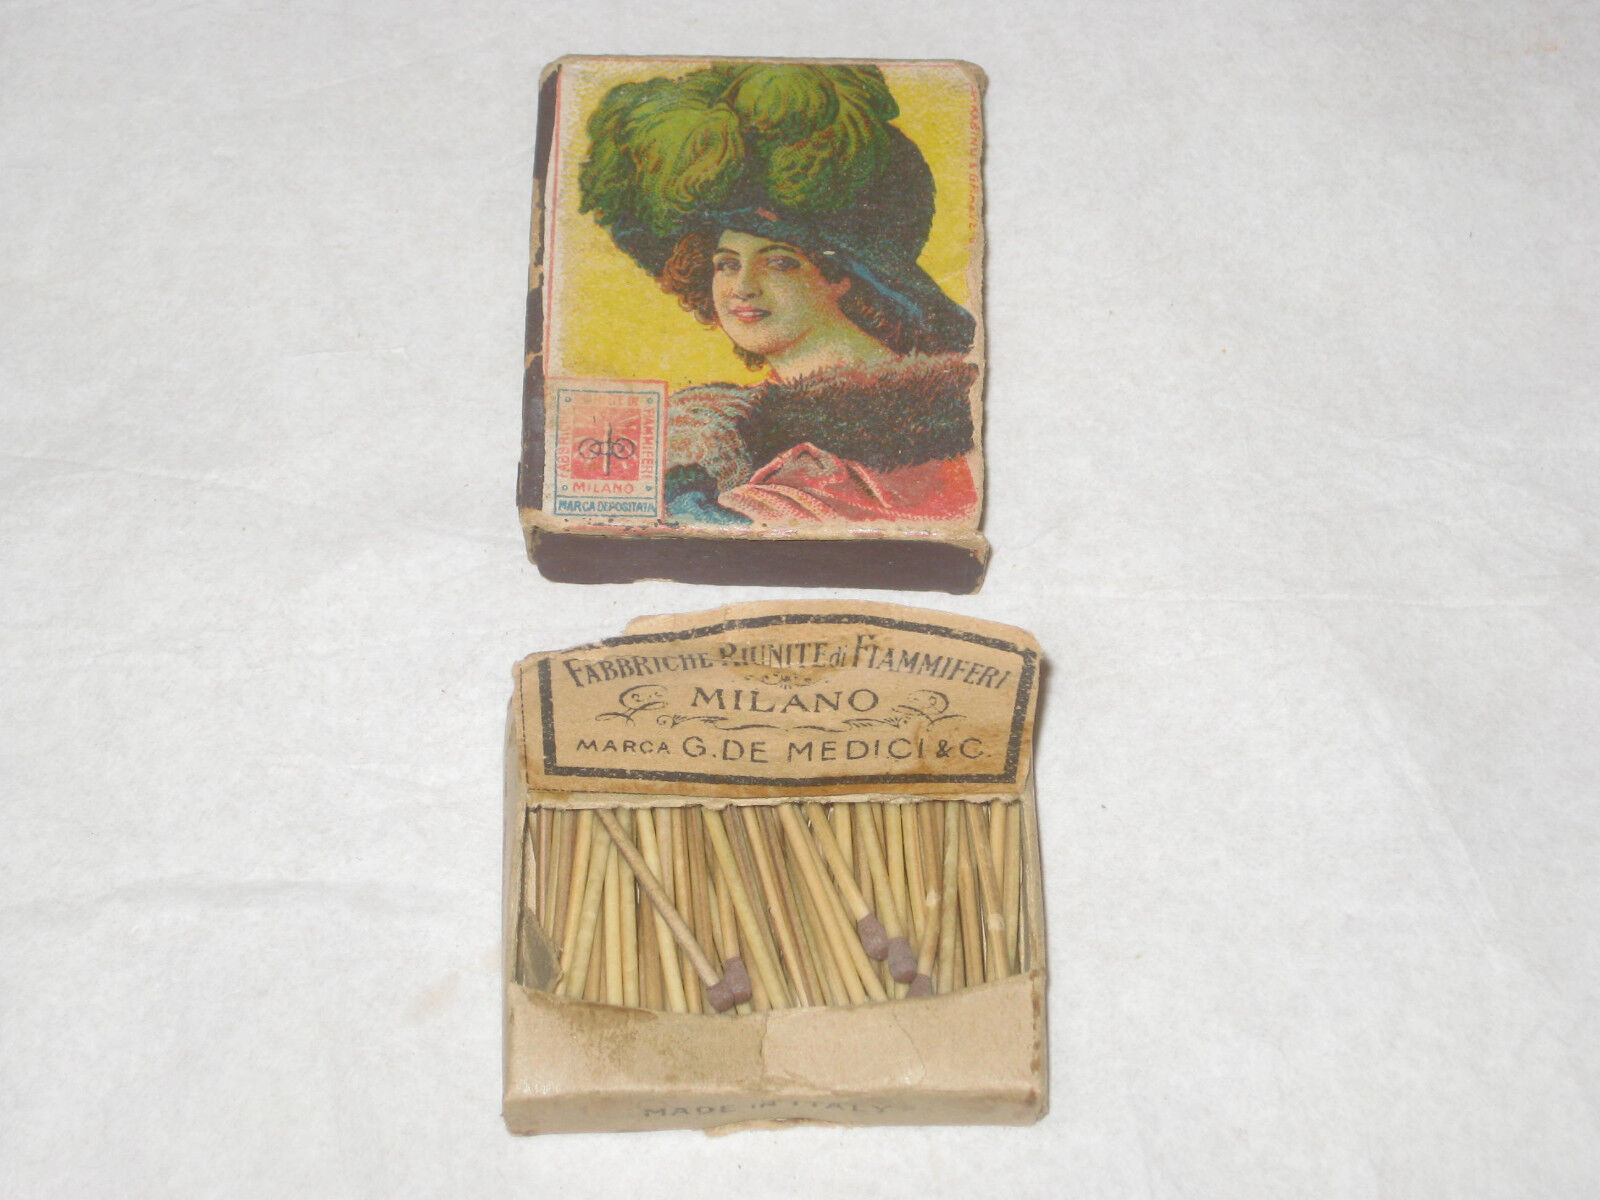 Antique cardboard matchbox Marca G de Medici with matches made in Italy